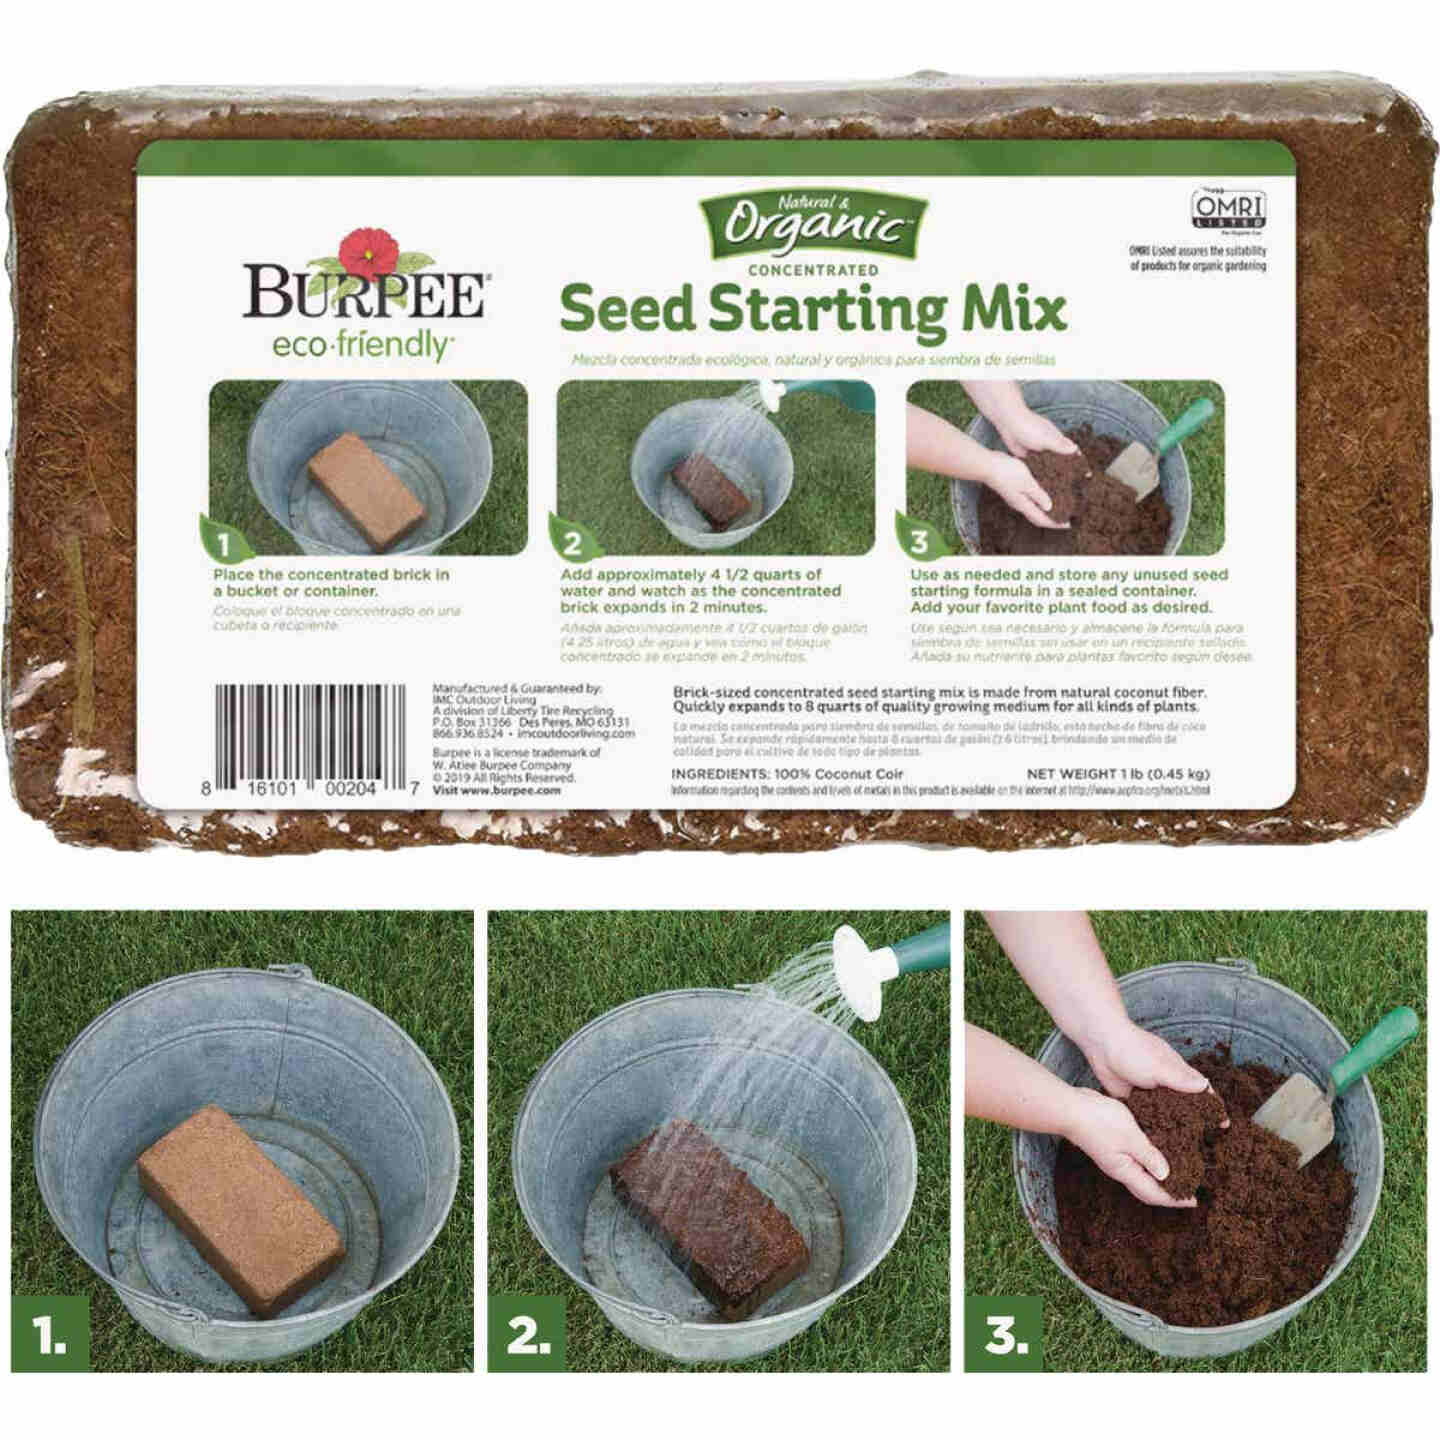 Burpee 8 Qt. 1-1/2 Lb. Concentrated Brick In-Ground Organic Seed Starting Mix Image 5